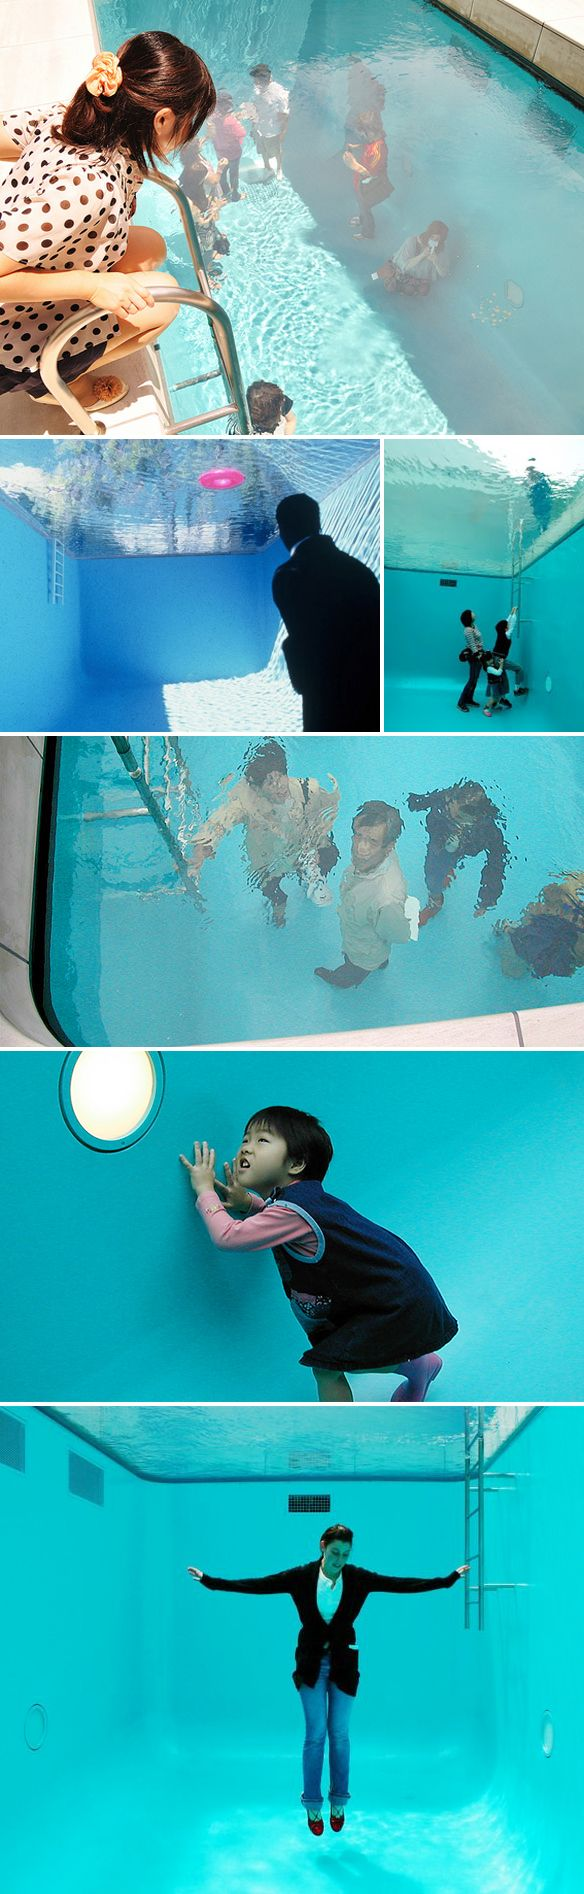 Installation artist: leandro erlich - as shown on blog: the jealous curator - The Swimming Pool at the 21st Century Museum of Art of Kanazawa, Japan - The Swimming Pool might be considered a place where, slowly, with time, different perspectives and perceptions of self and others all come to intersect.